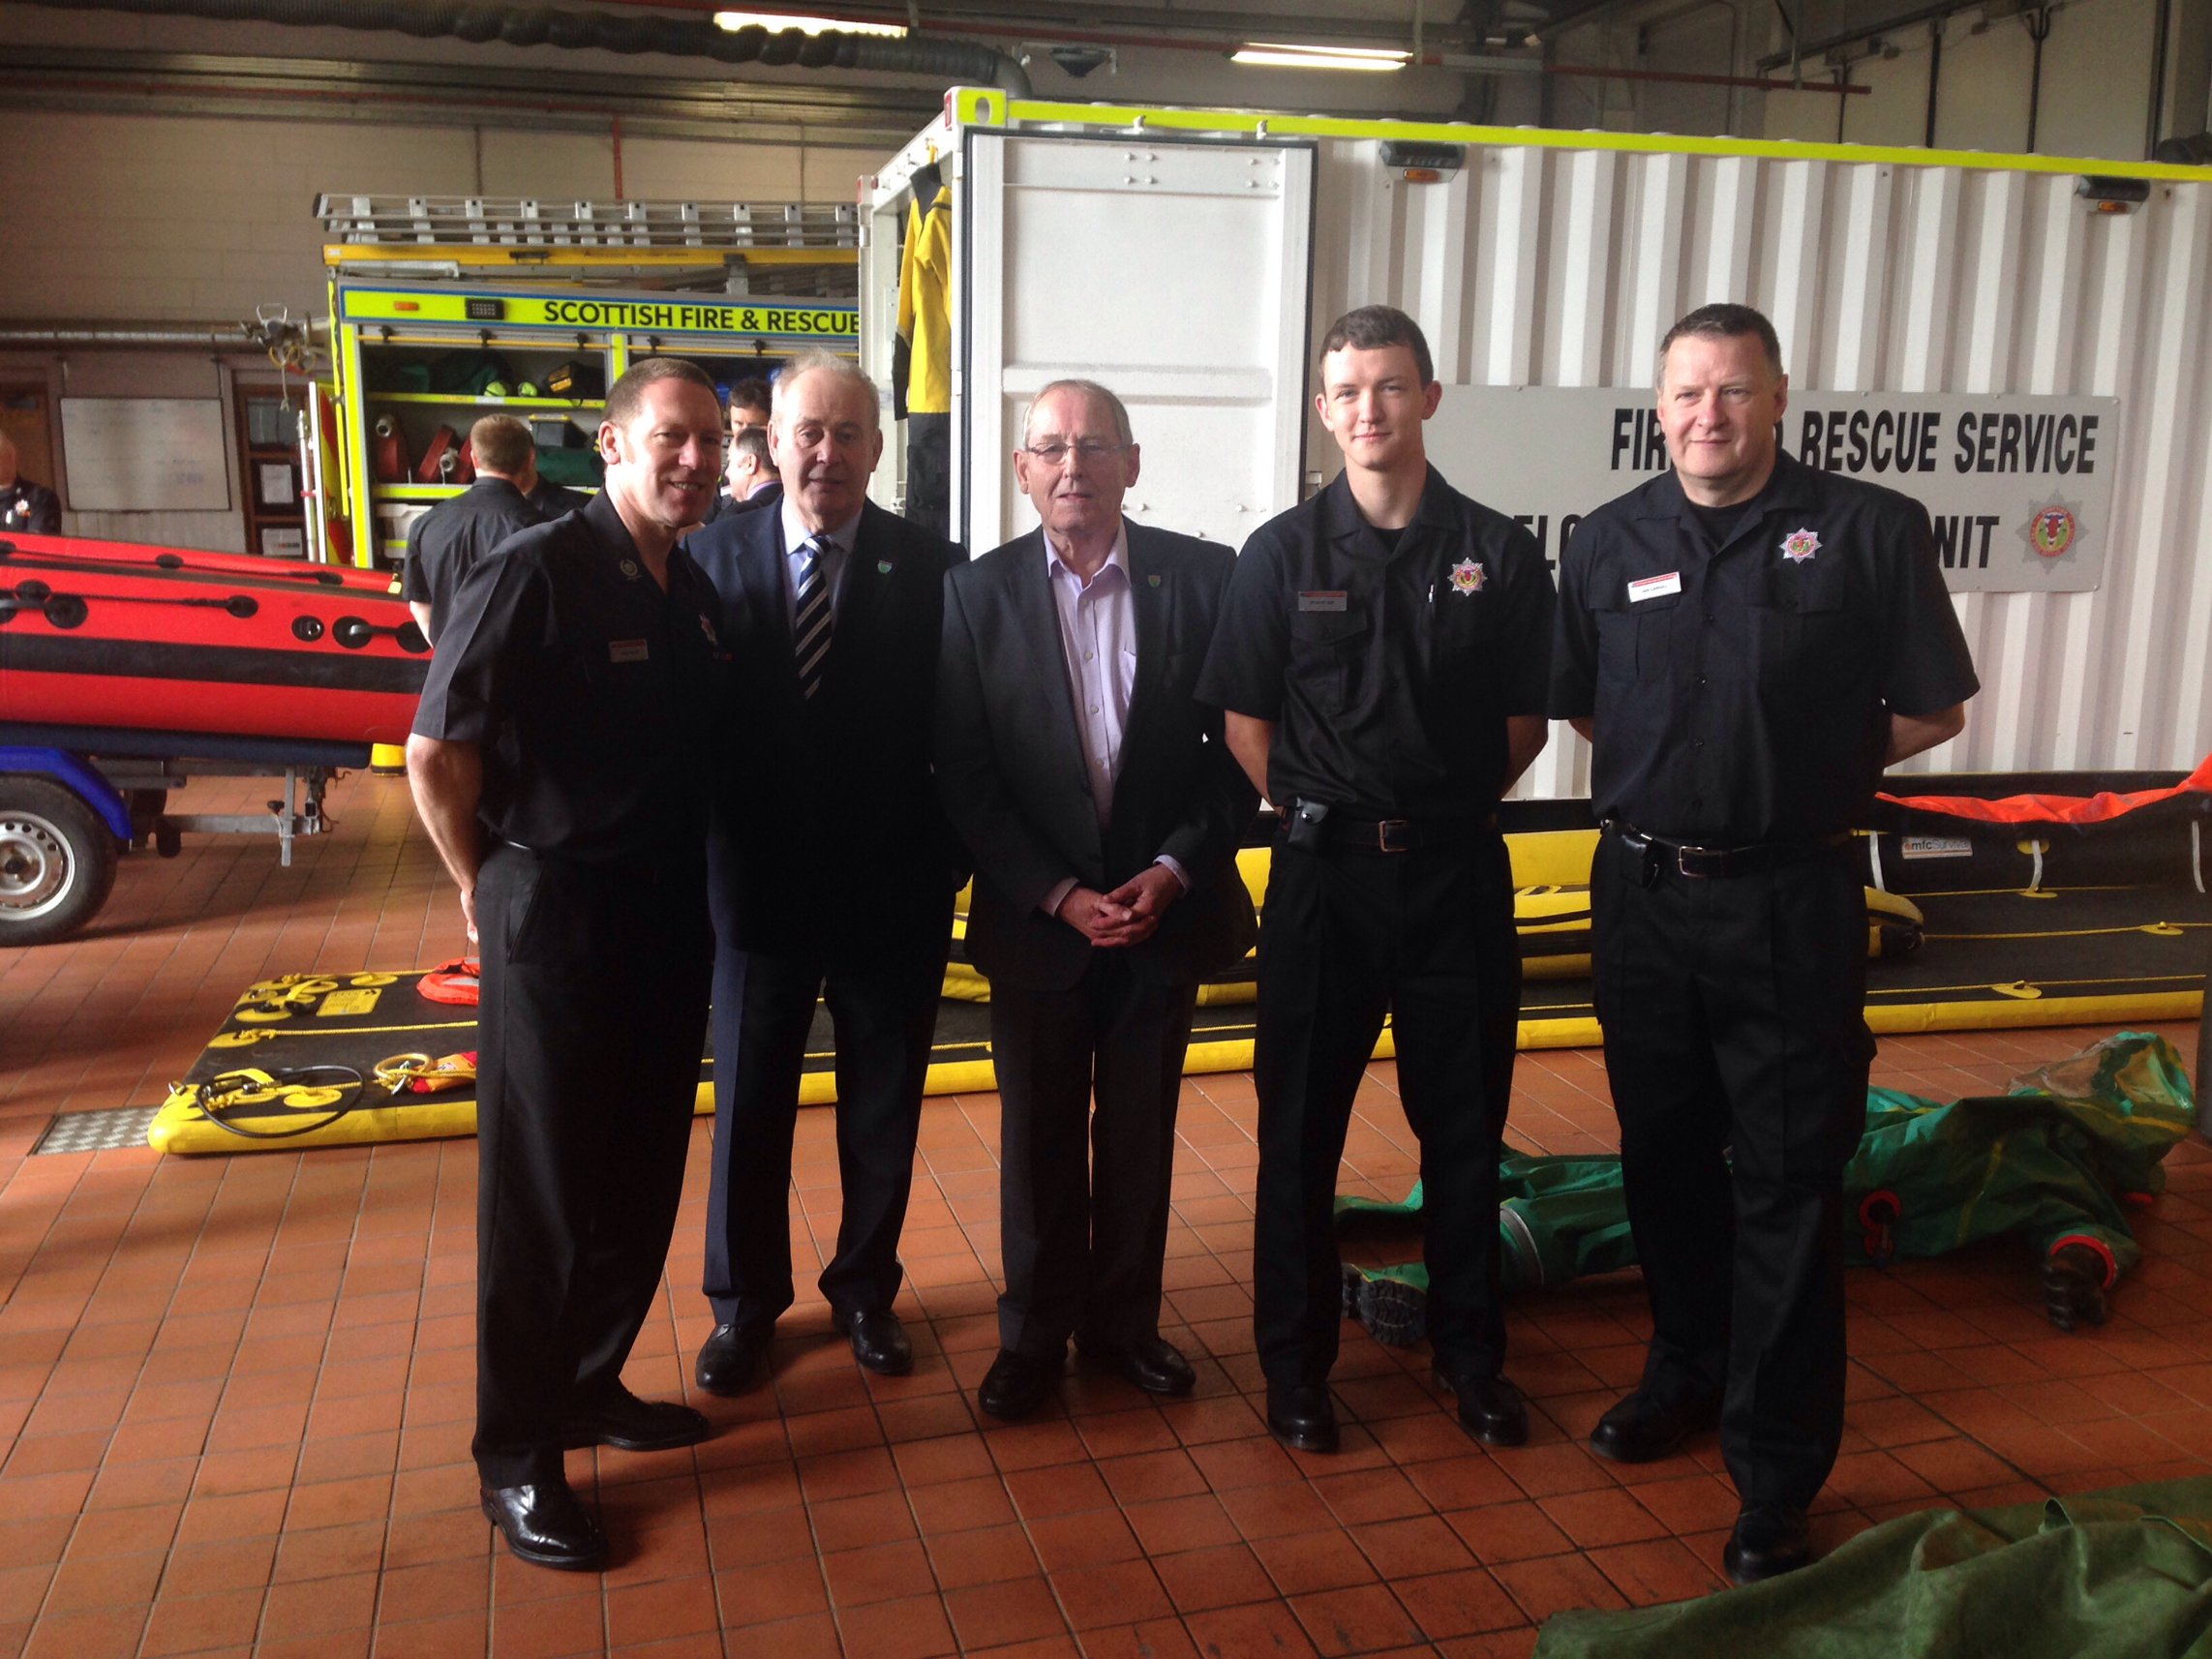 SFRS and Police stage engagement event for Moray elected members